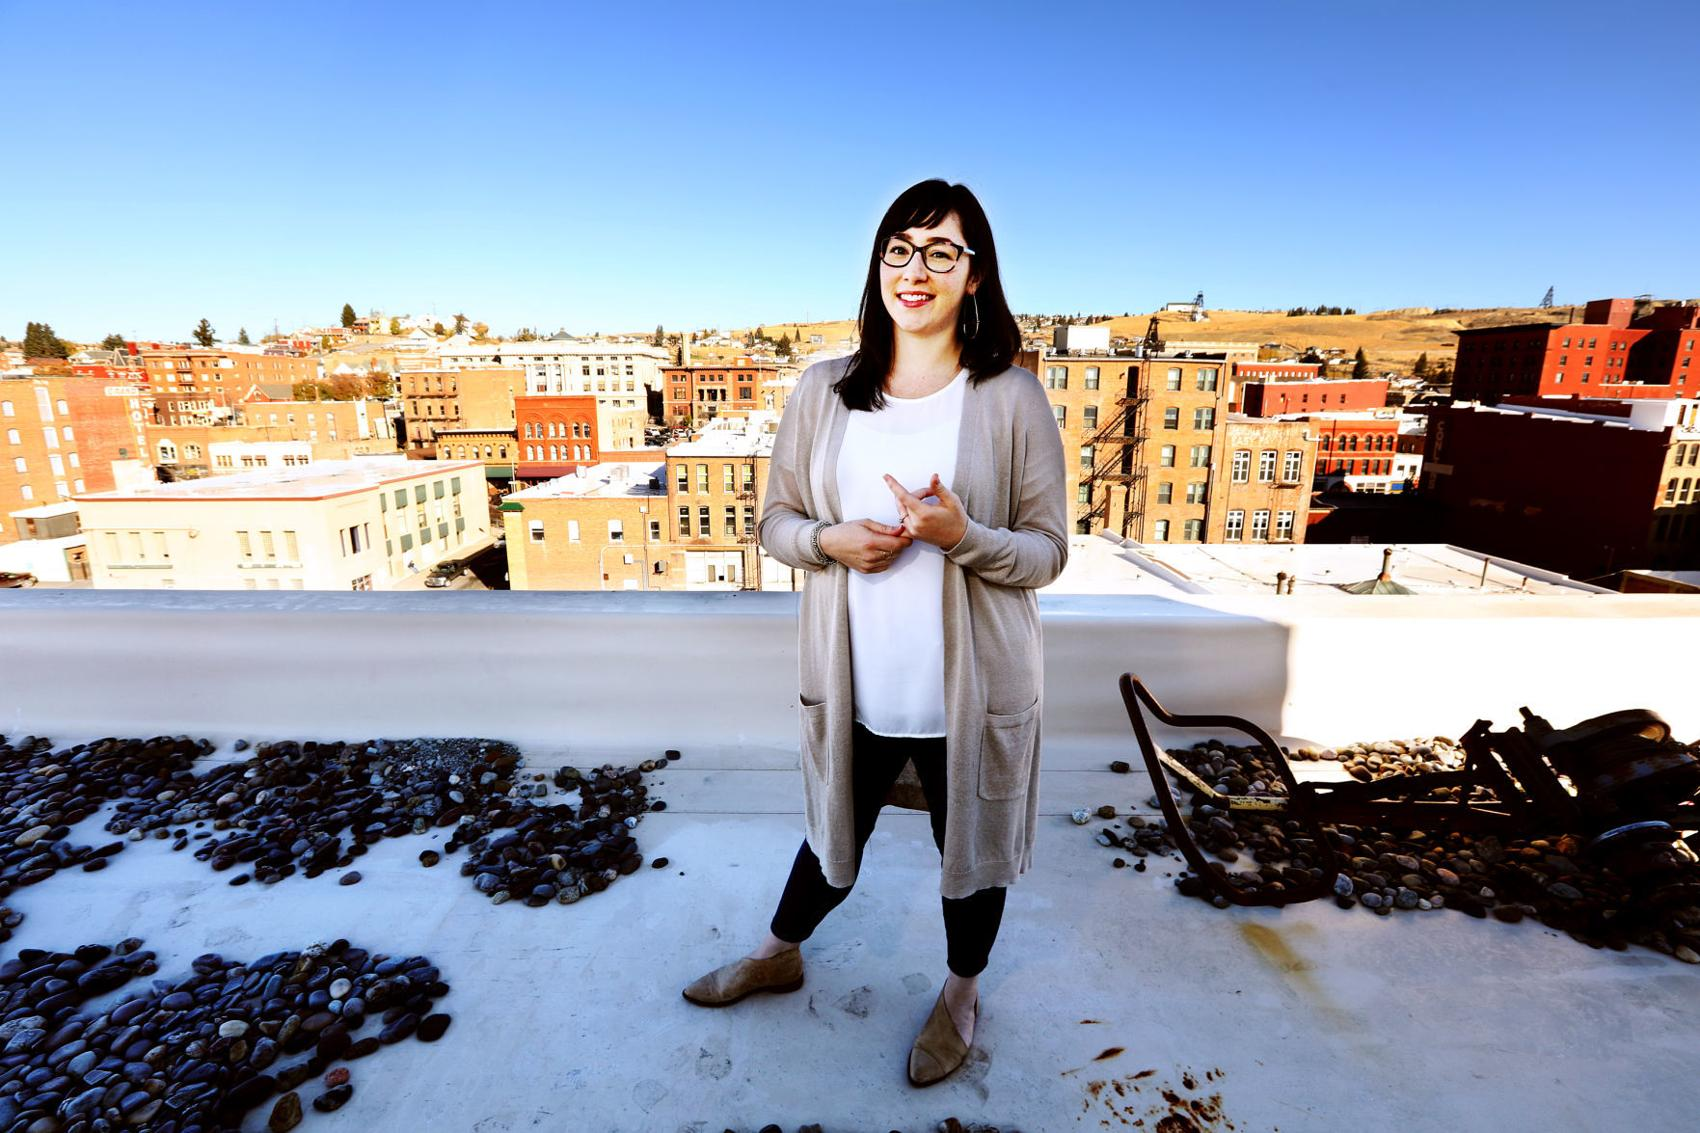 """Julia Crain: """"The place I wanted to be an urban planner was here."""" Meagan Thompson, The Montana Standard"""